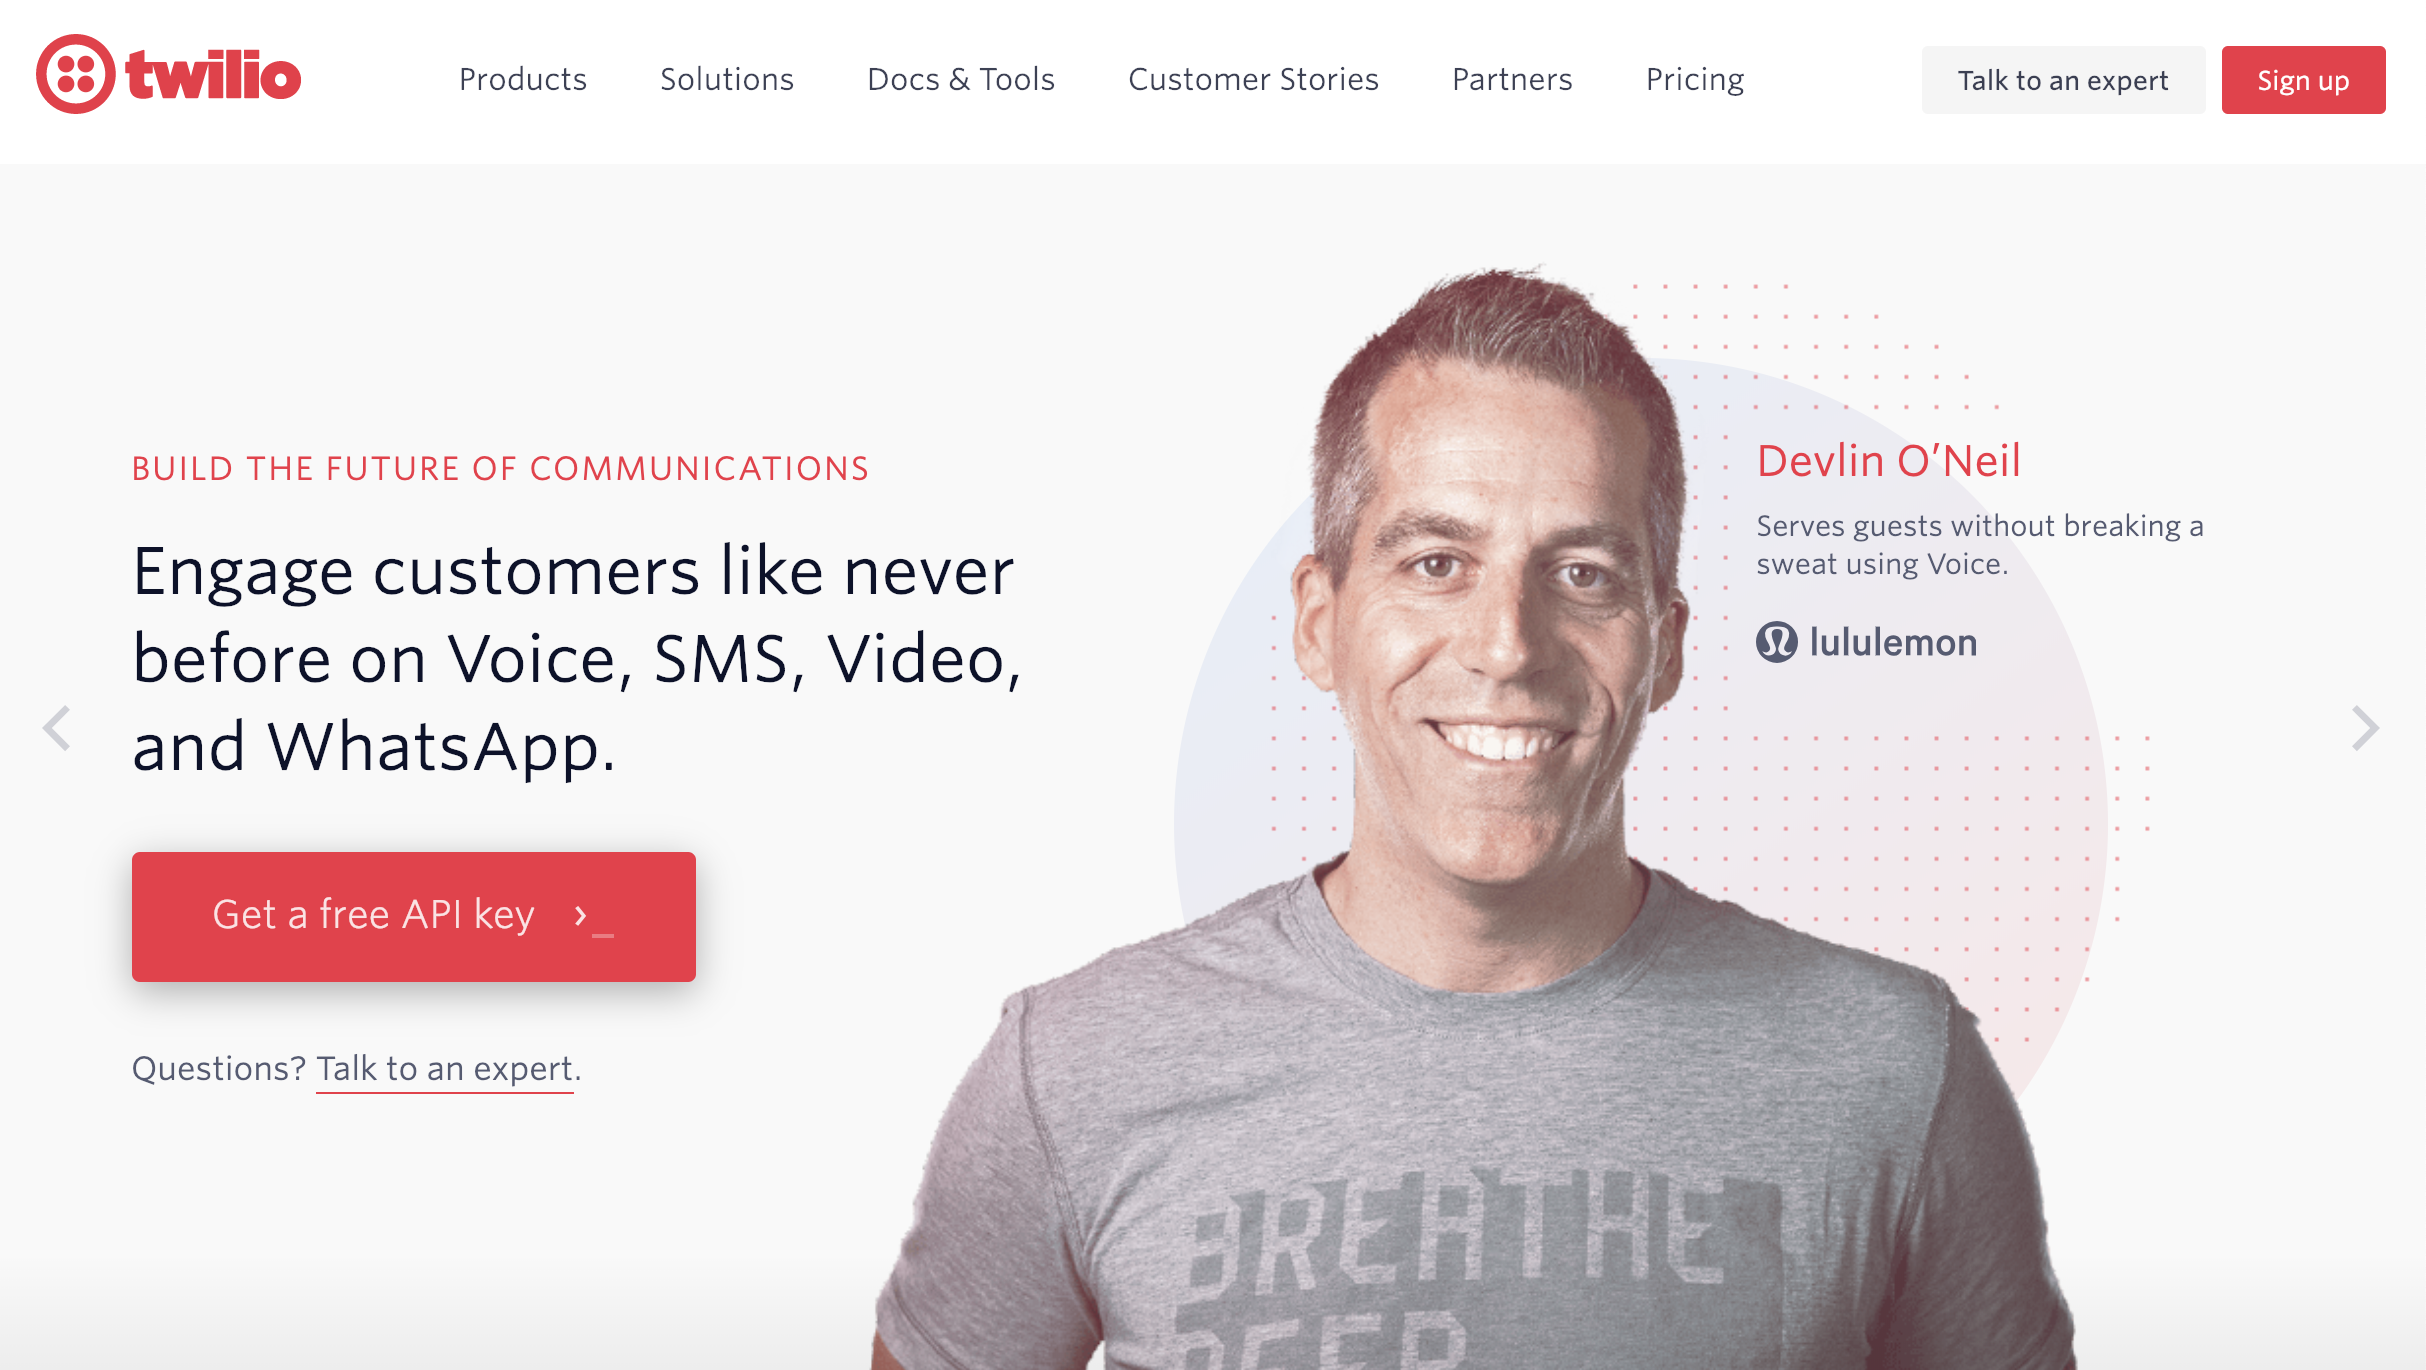 twilio website homepage